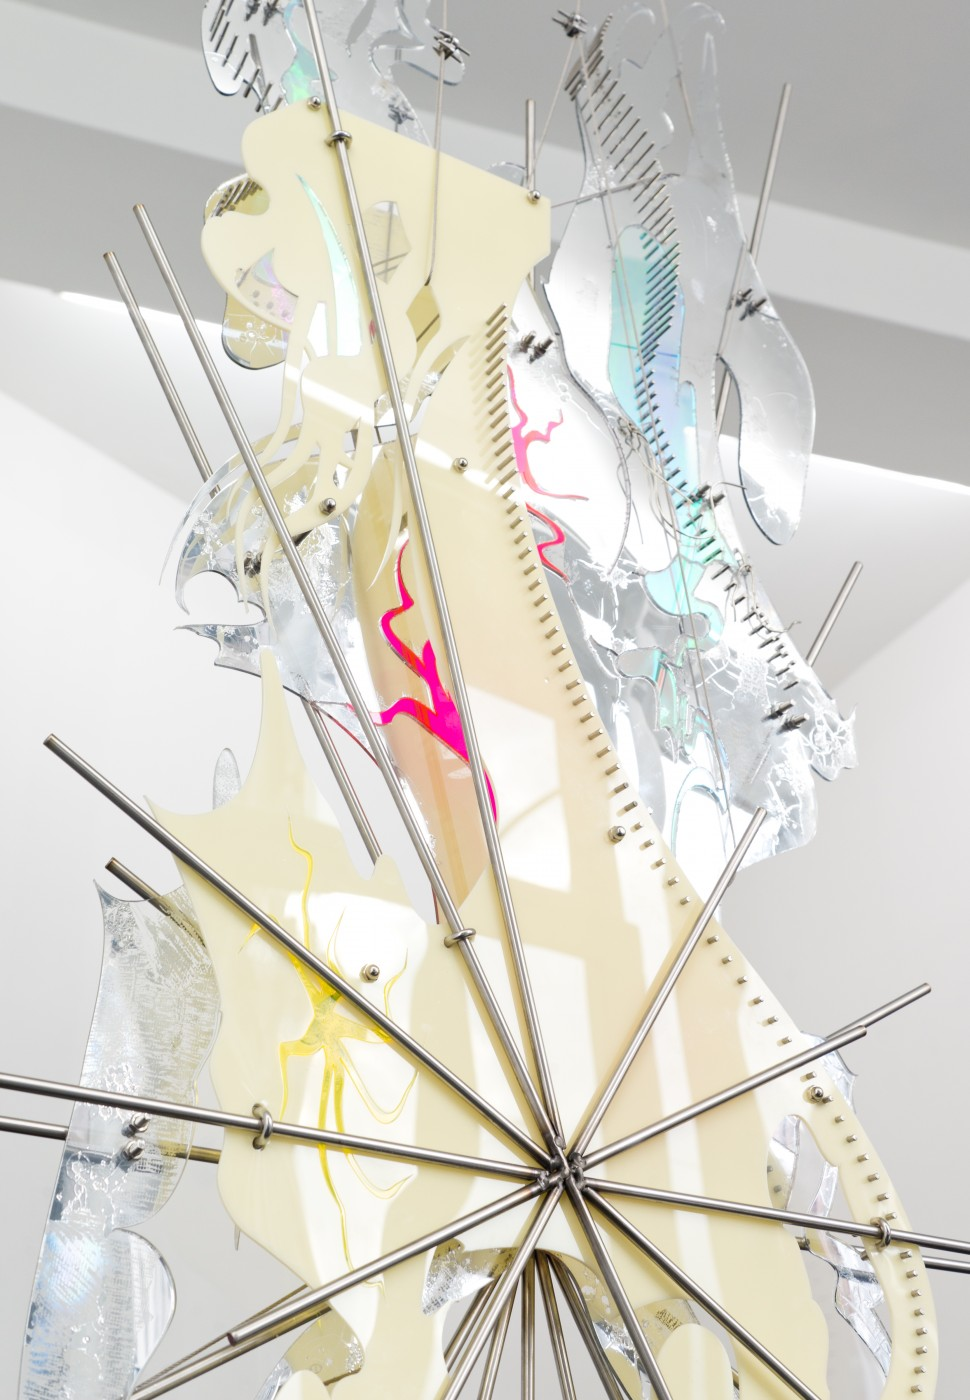 AFTERBURNER, THE ENEMY (LONG ARMED SUN) AND SKINSUIT AT THE CASTLE  Skinsuit at the Castle</I>, 2016 (detail)  Stainless steel, acrylic  180 x 65 x 7 cm / 70.9 x 25.6 x 2.8 in - High Art Gallery Paris